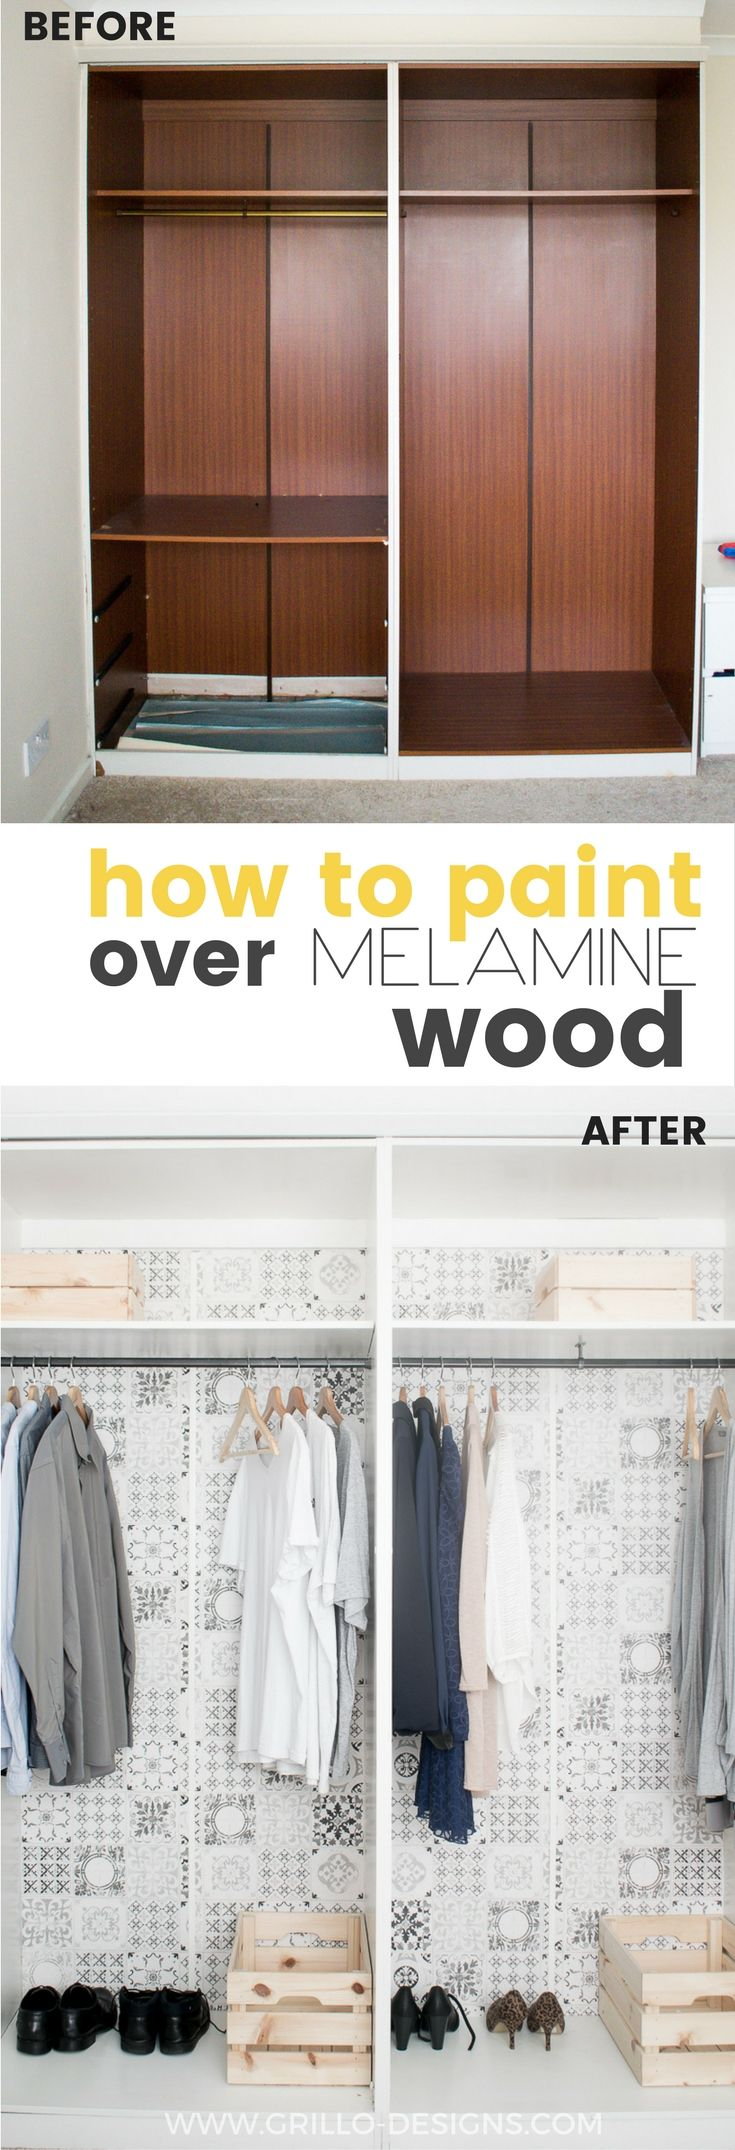 How To Paint Melamine Wood - and live to tell the tale! • Grillo Designs